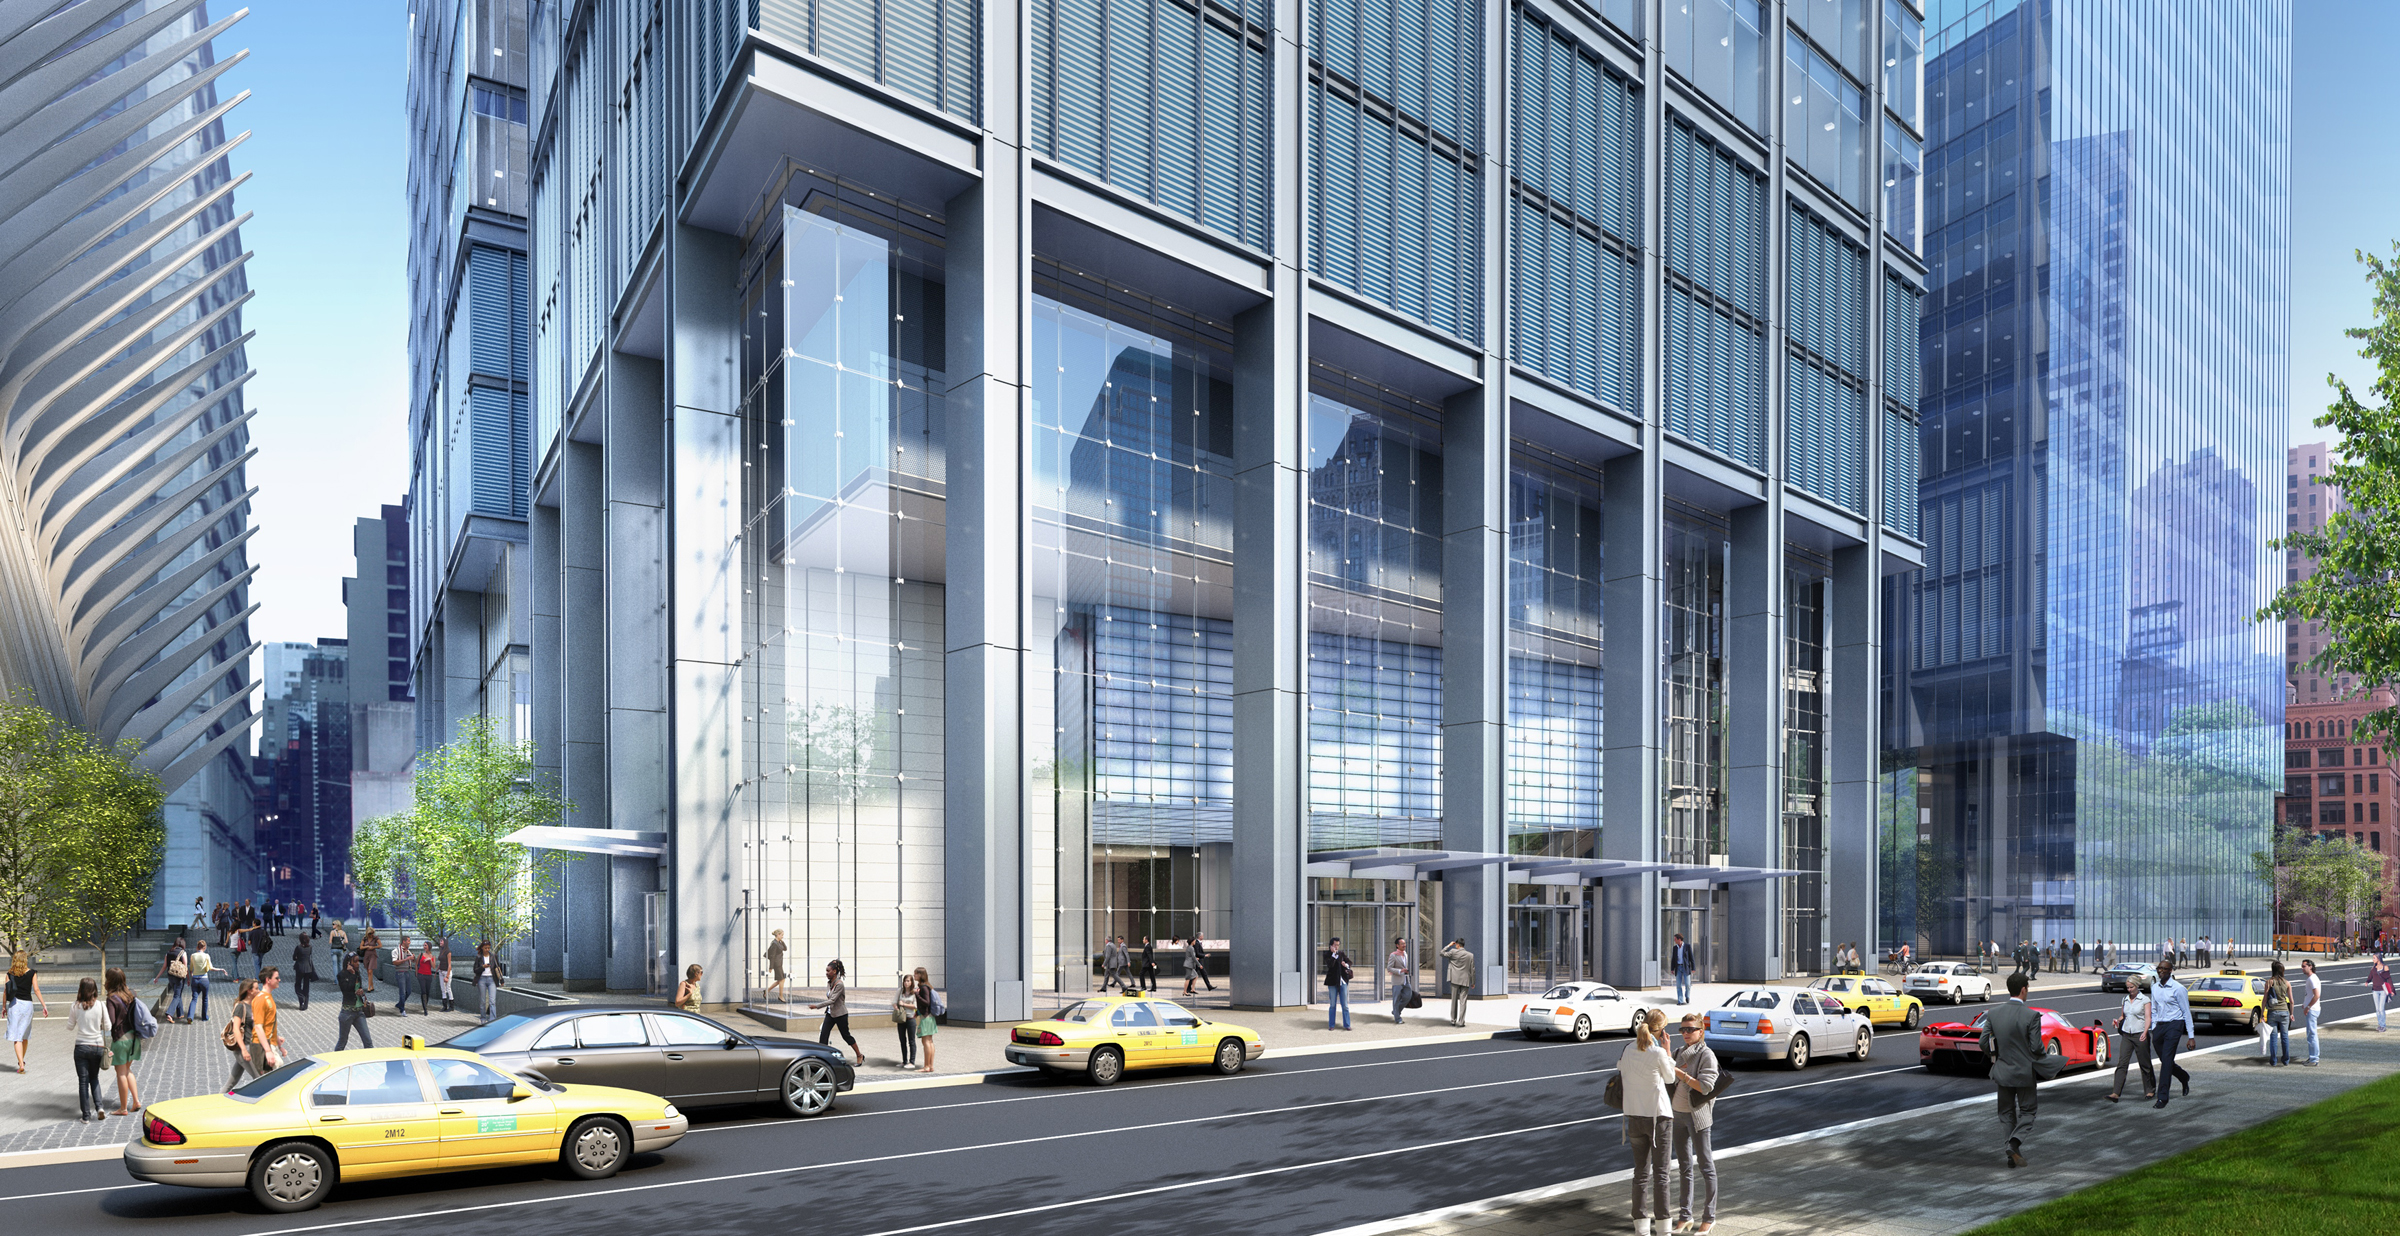 3 world trade center office tower new york city manhattan silverstein properties rogers stirk harbour partners architect rendering